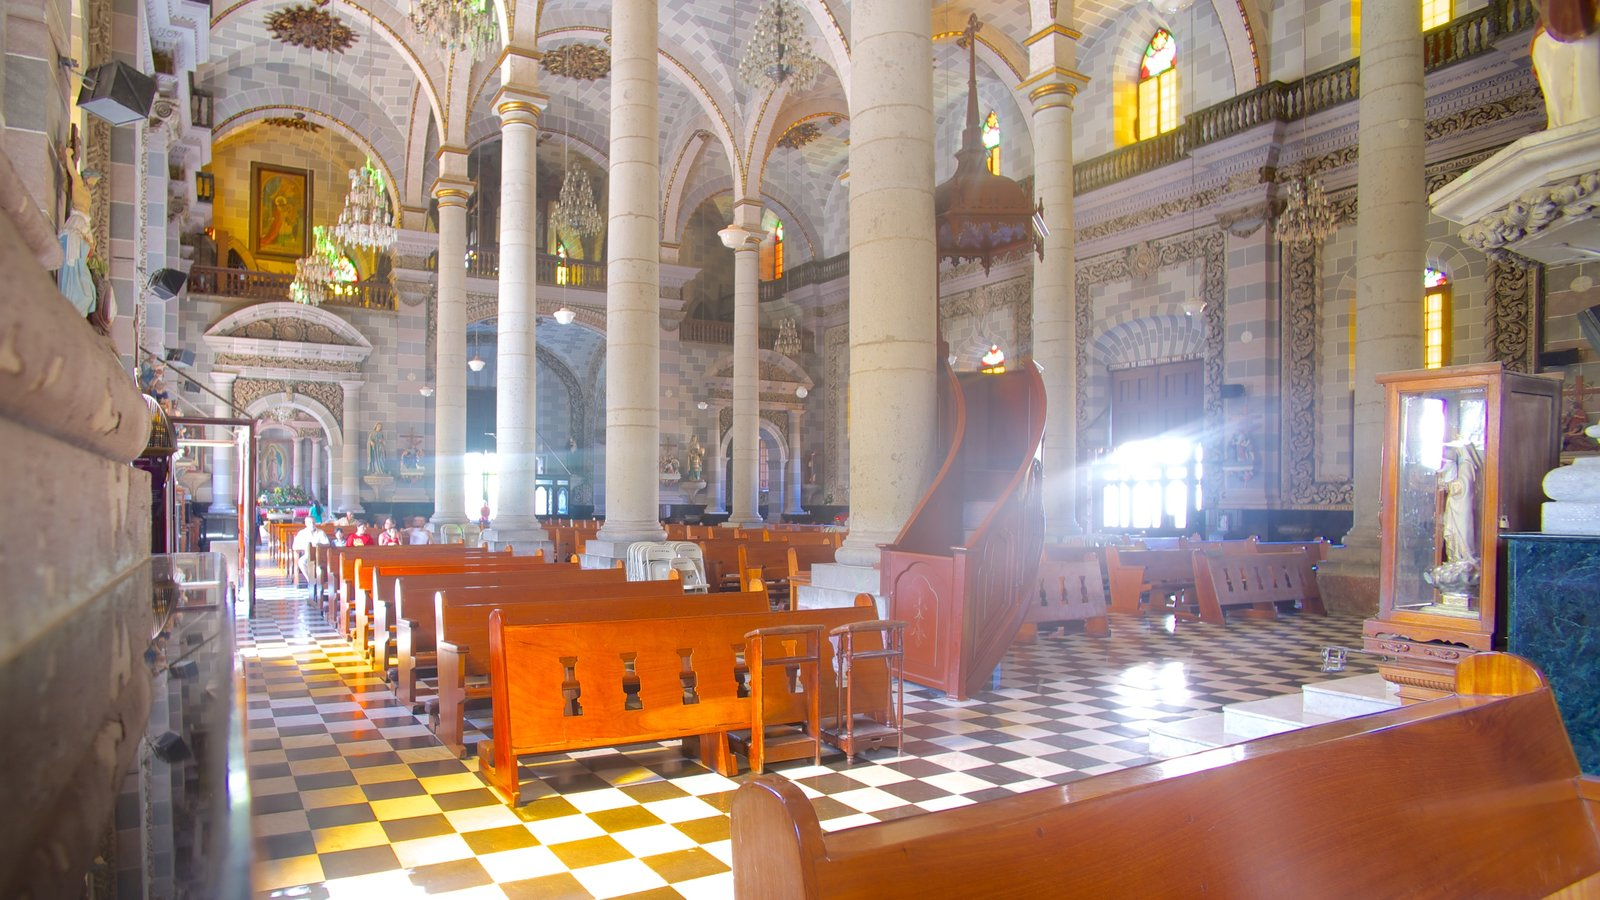 Immaculate Conception Cathedral featuring a church or cathedral, religious aspects and heritage architecture